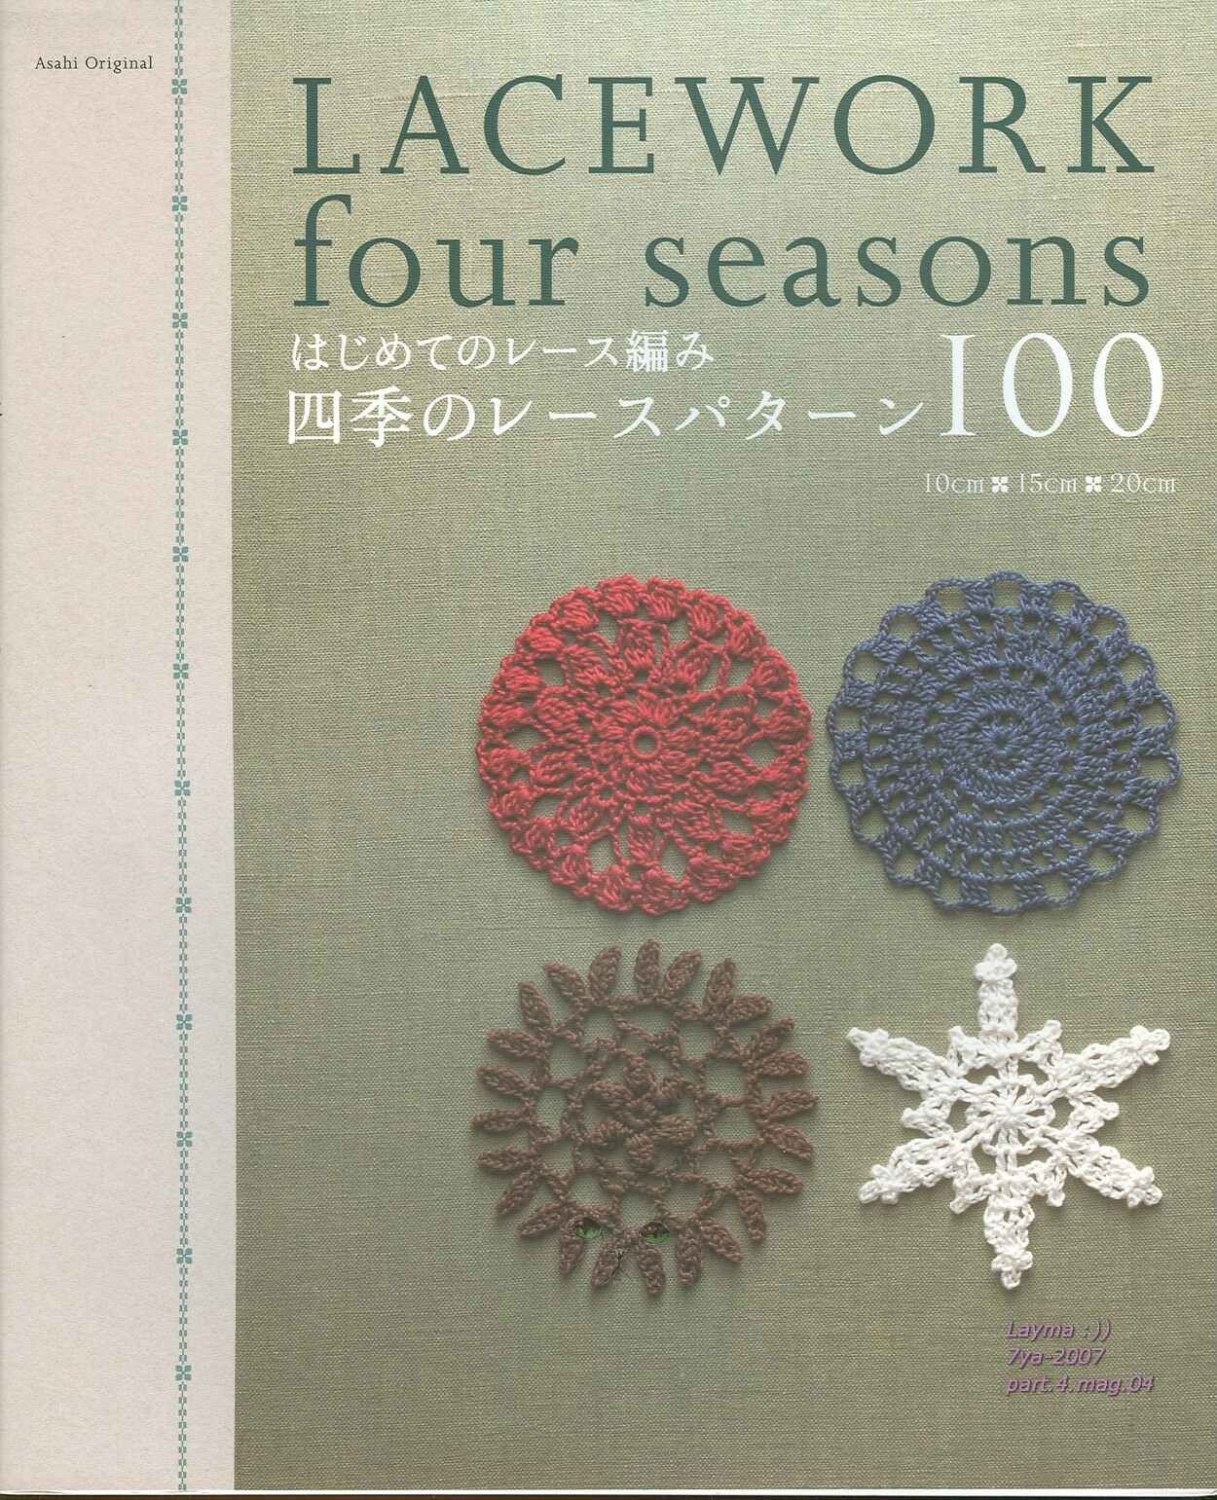 Lacework Crochet Beautiful Lacework Four Seasons 100 Crochet Motif 10 20 Cm and Edging Of Brilliant 50 Pics Lacework Crochet